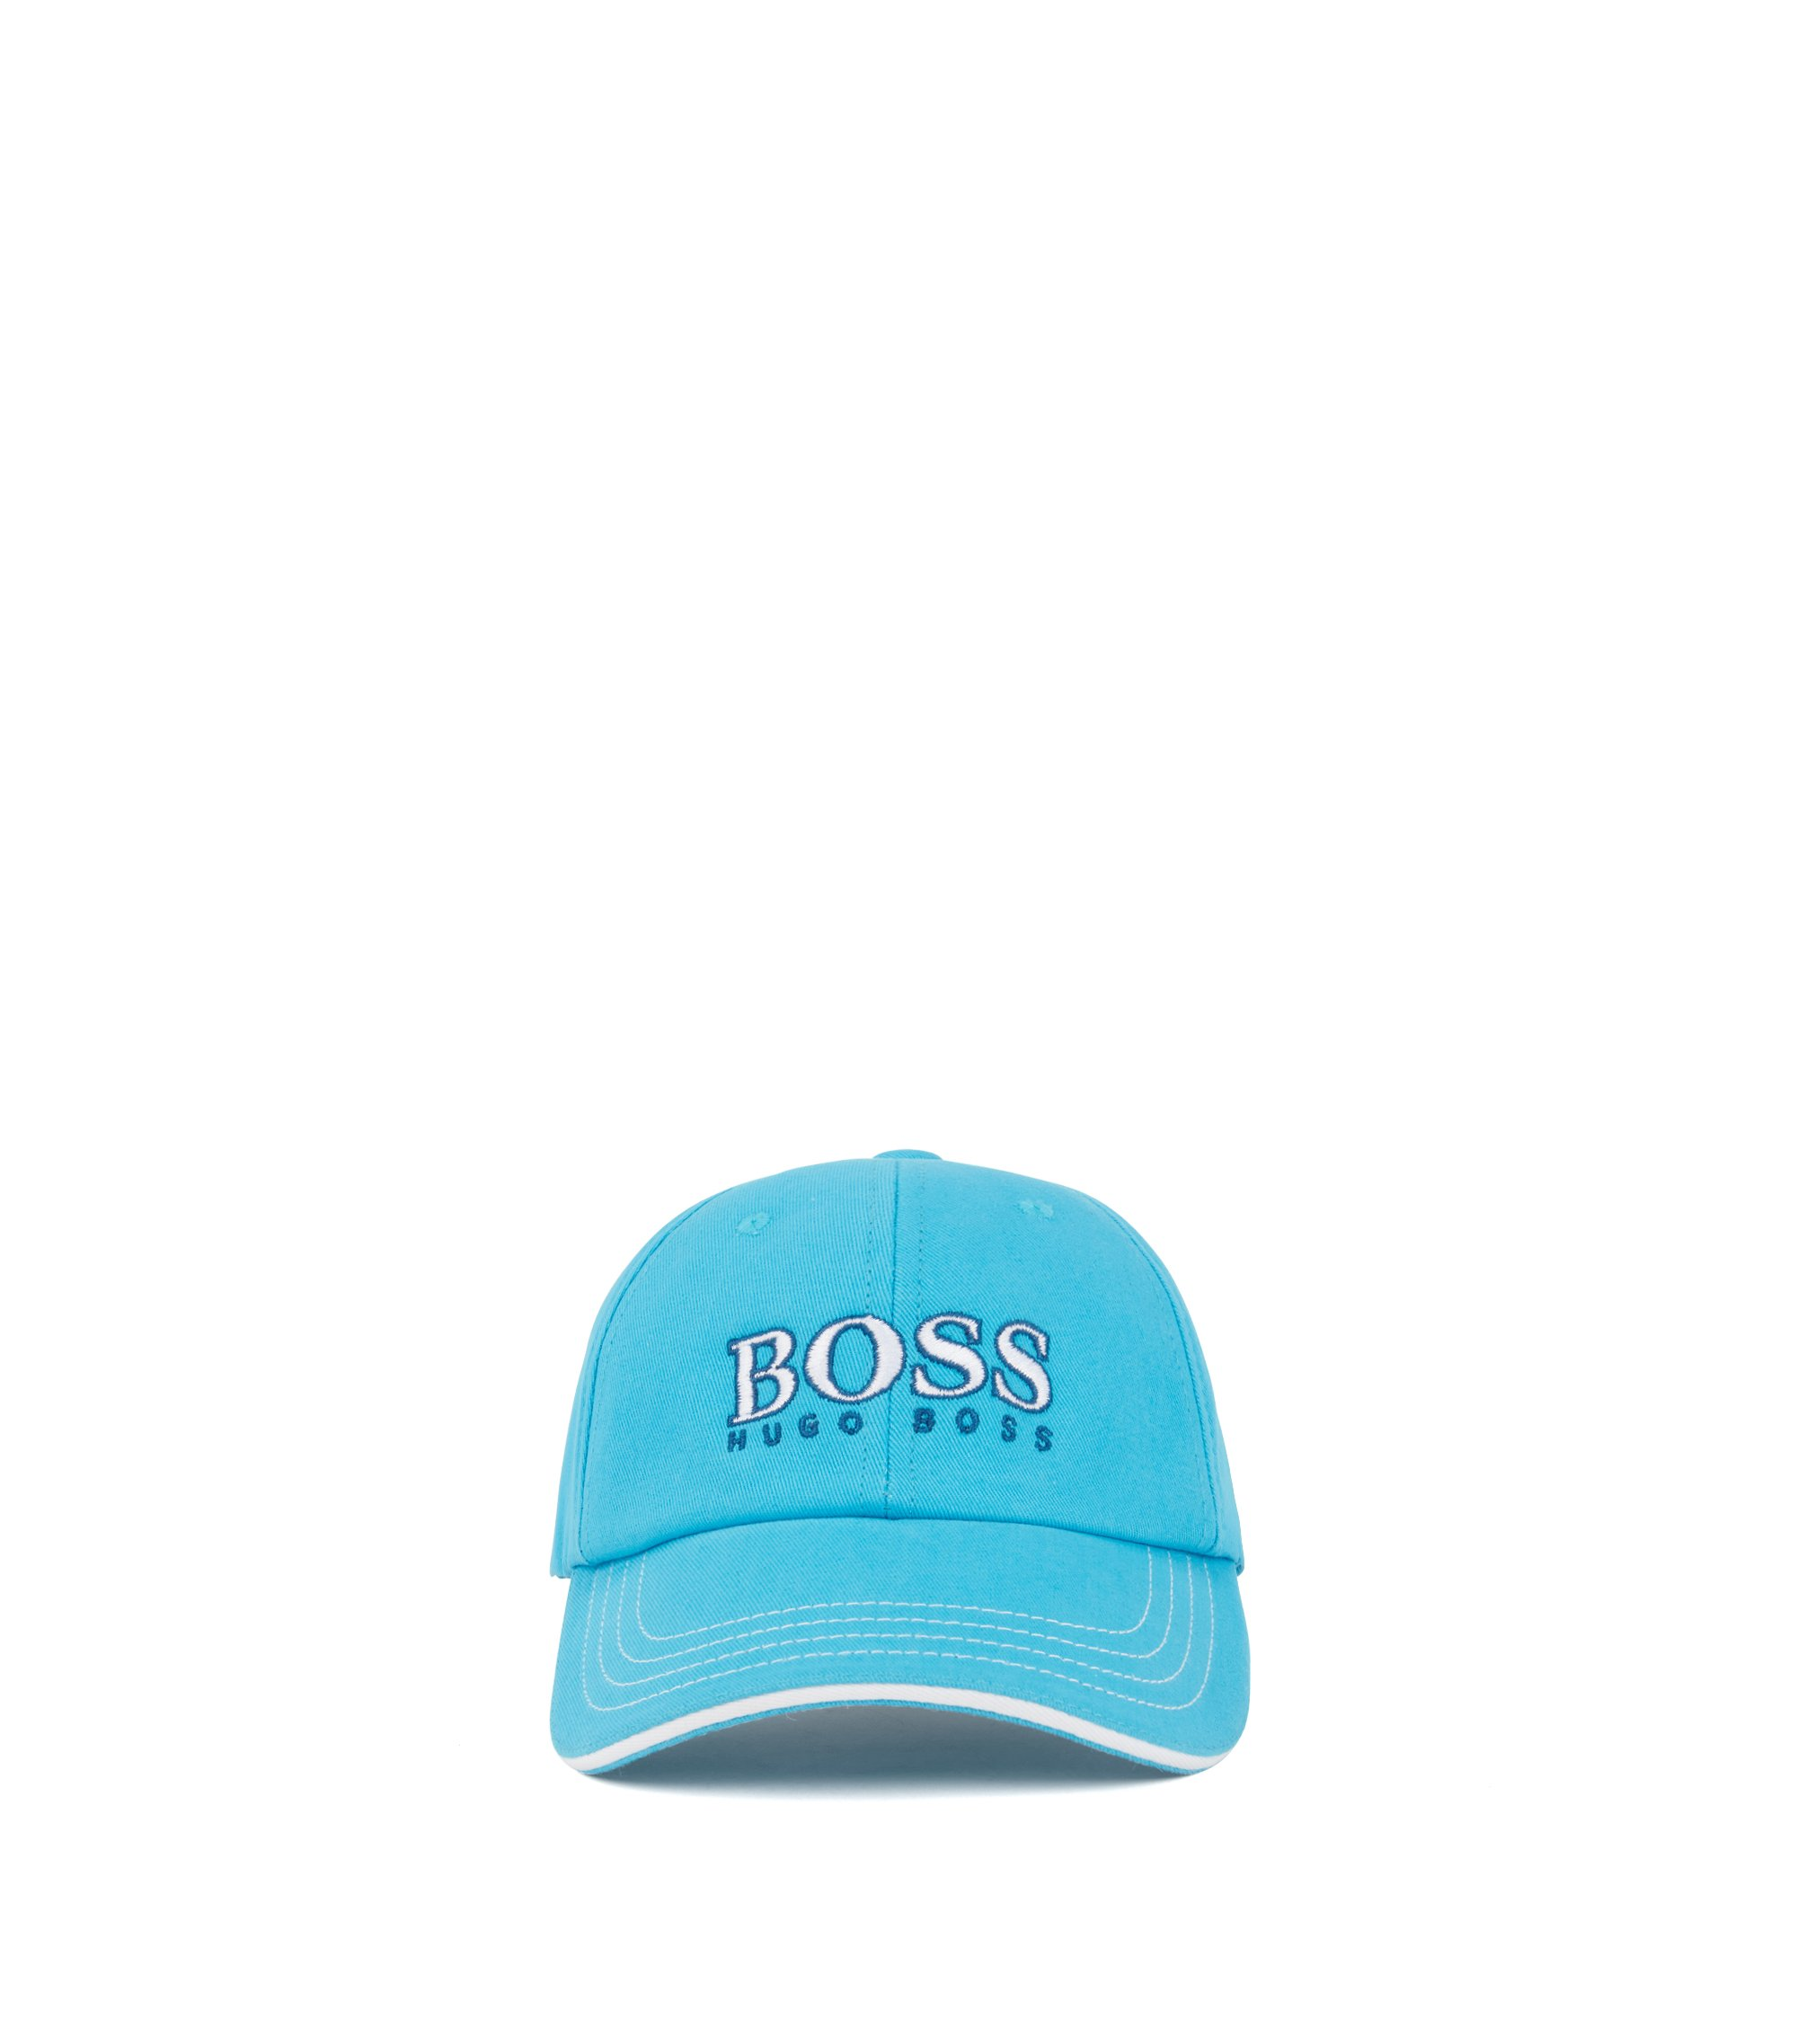 Kids' logo-embroidered baseball cap in cotton twill, Light Blue